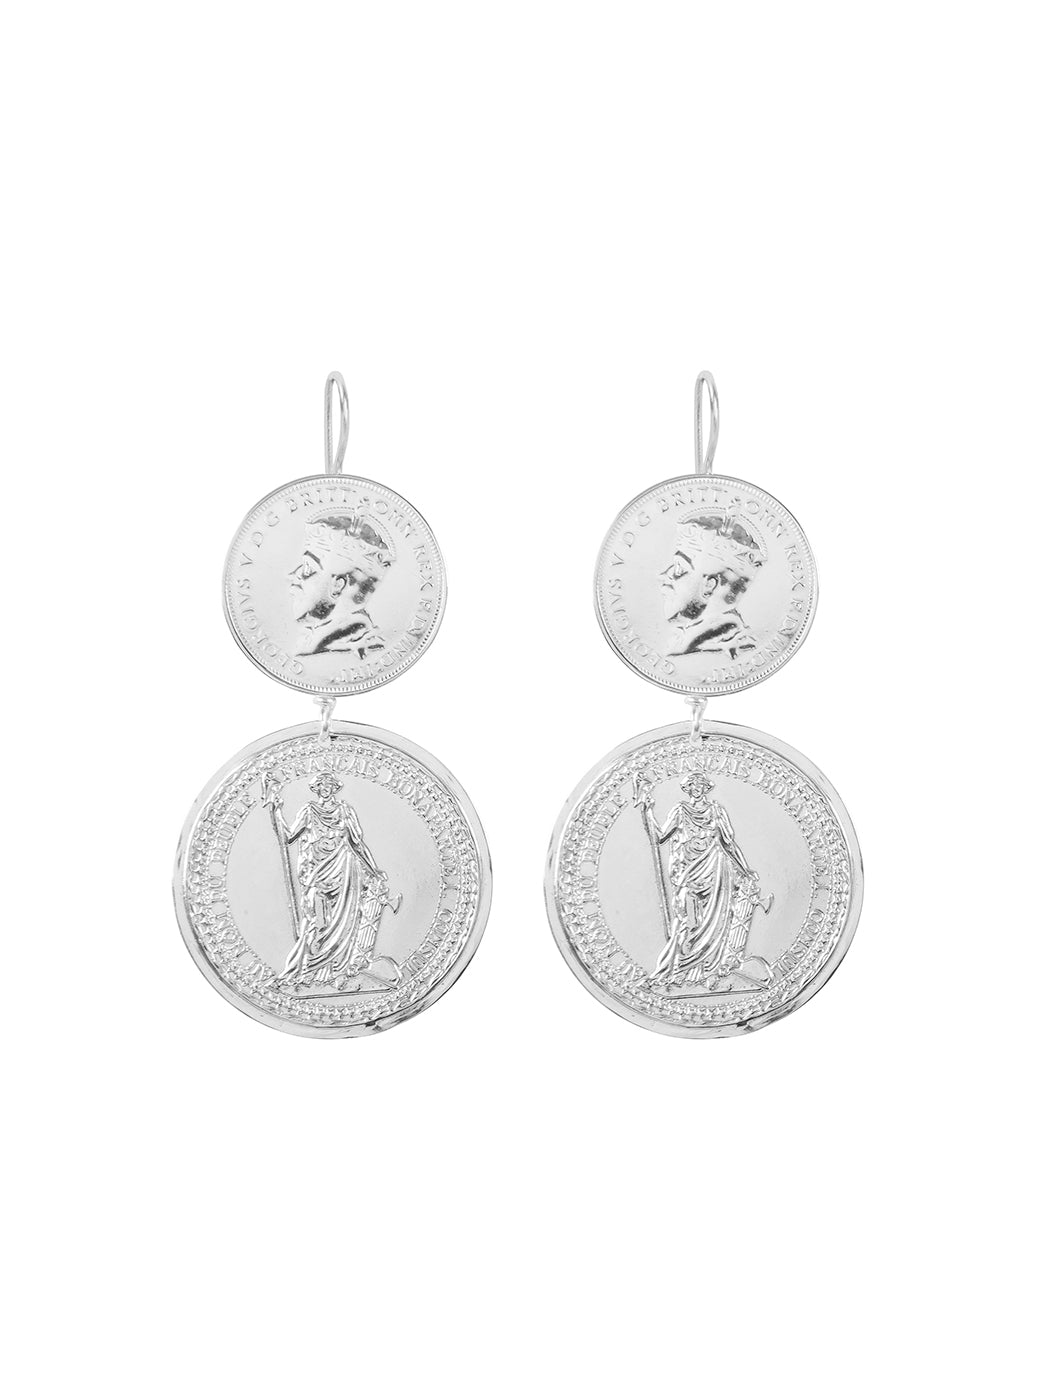 Fiorina Jewellery Monster Double Coin Earrings